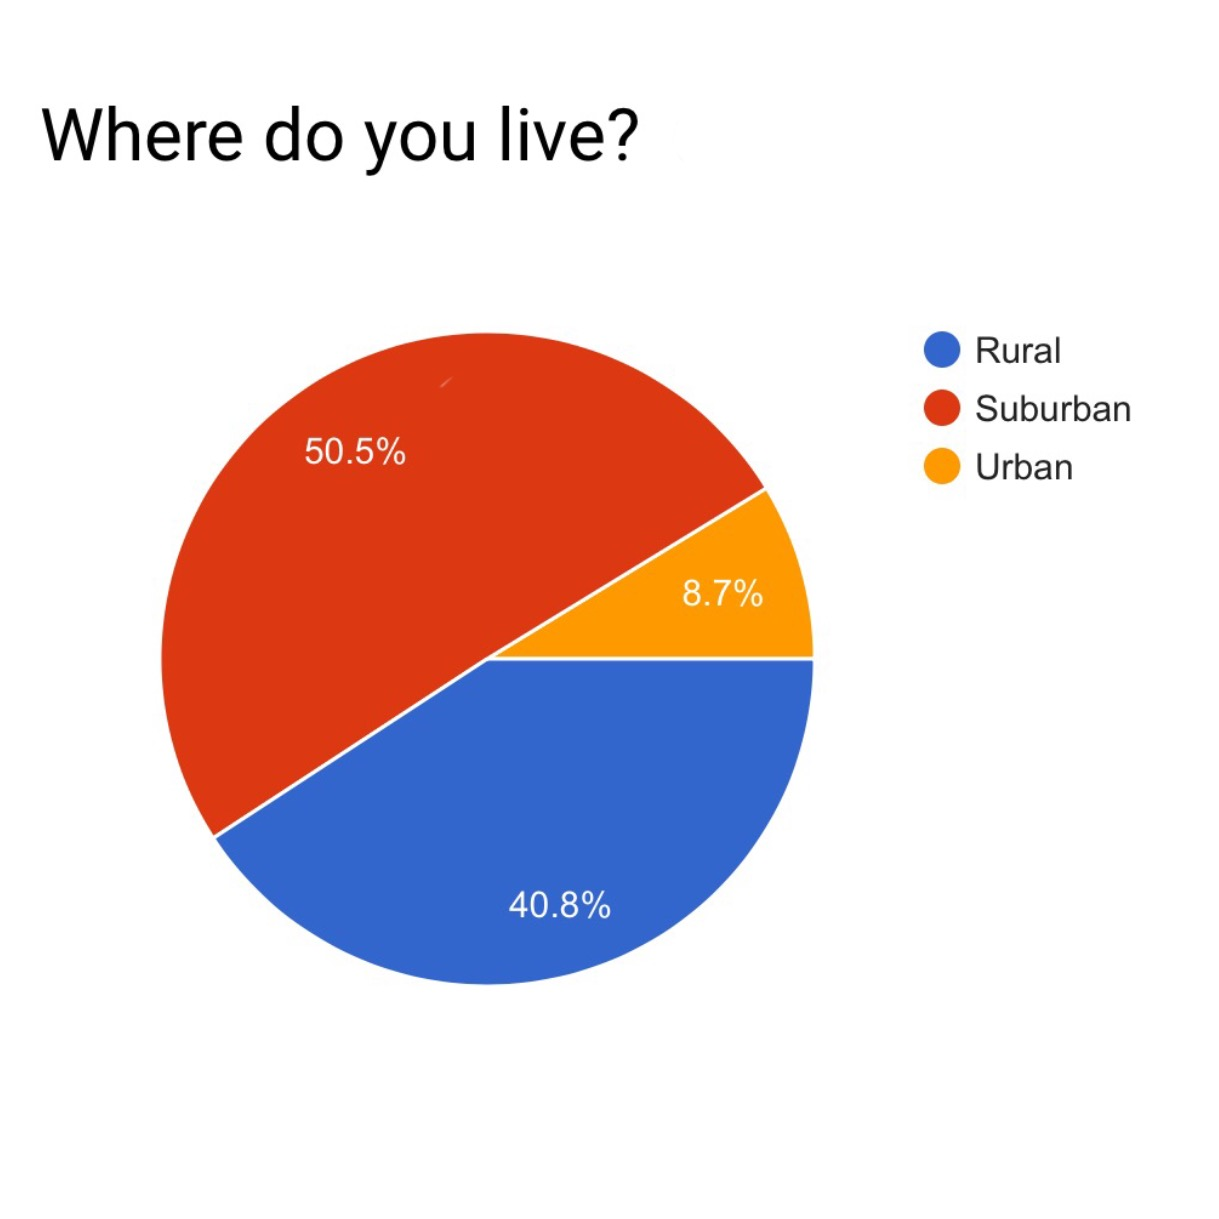 Where Do you Live Pie Chart